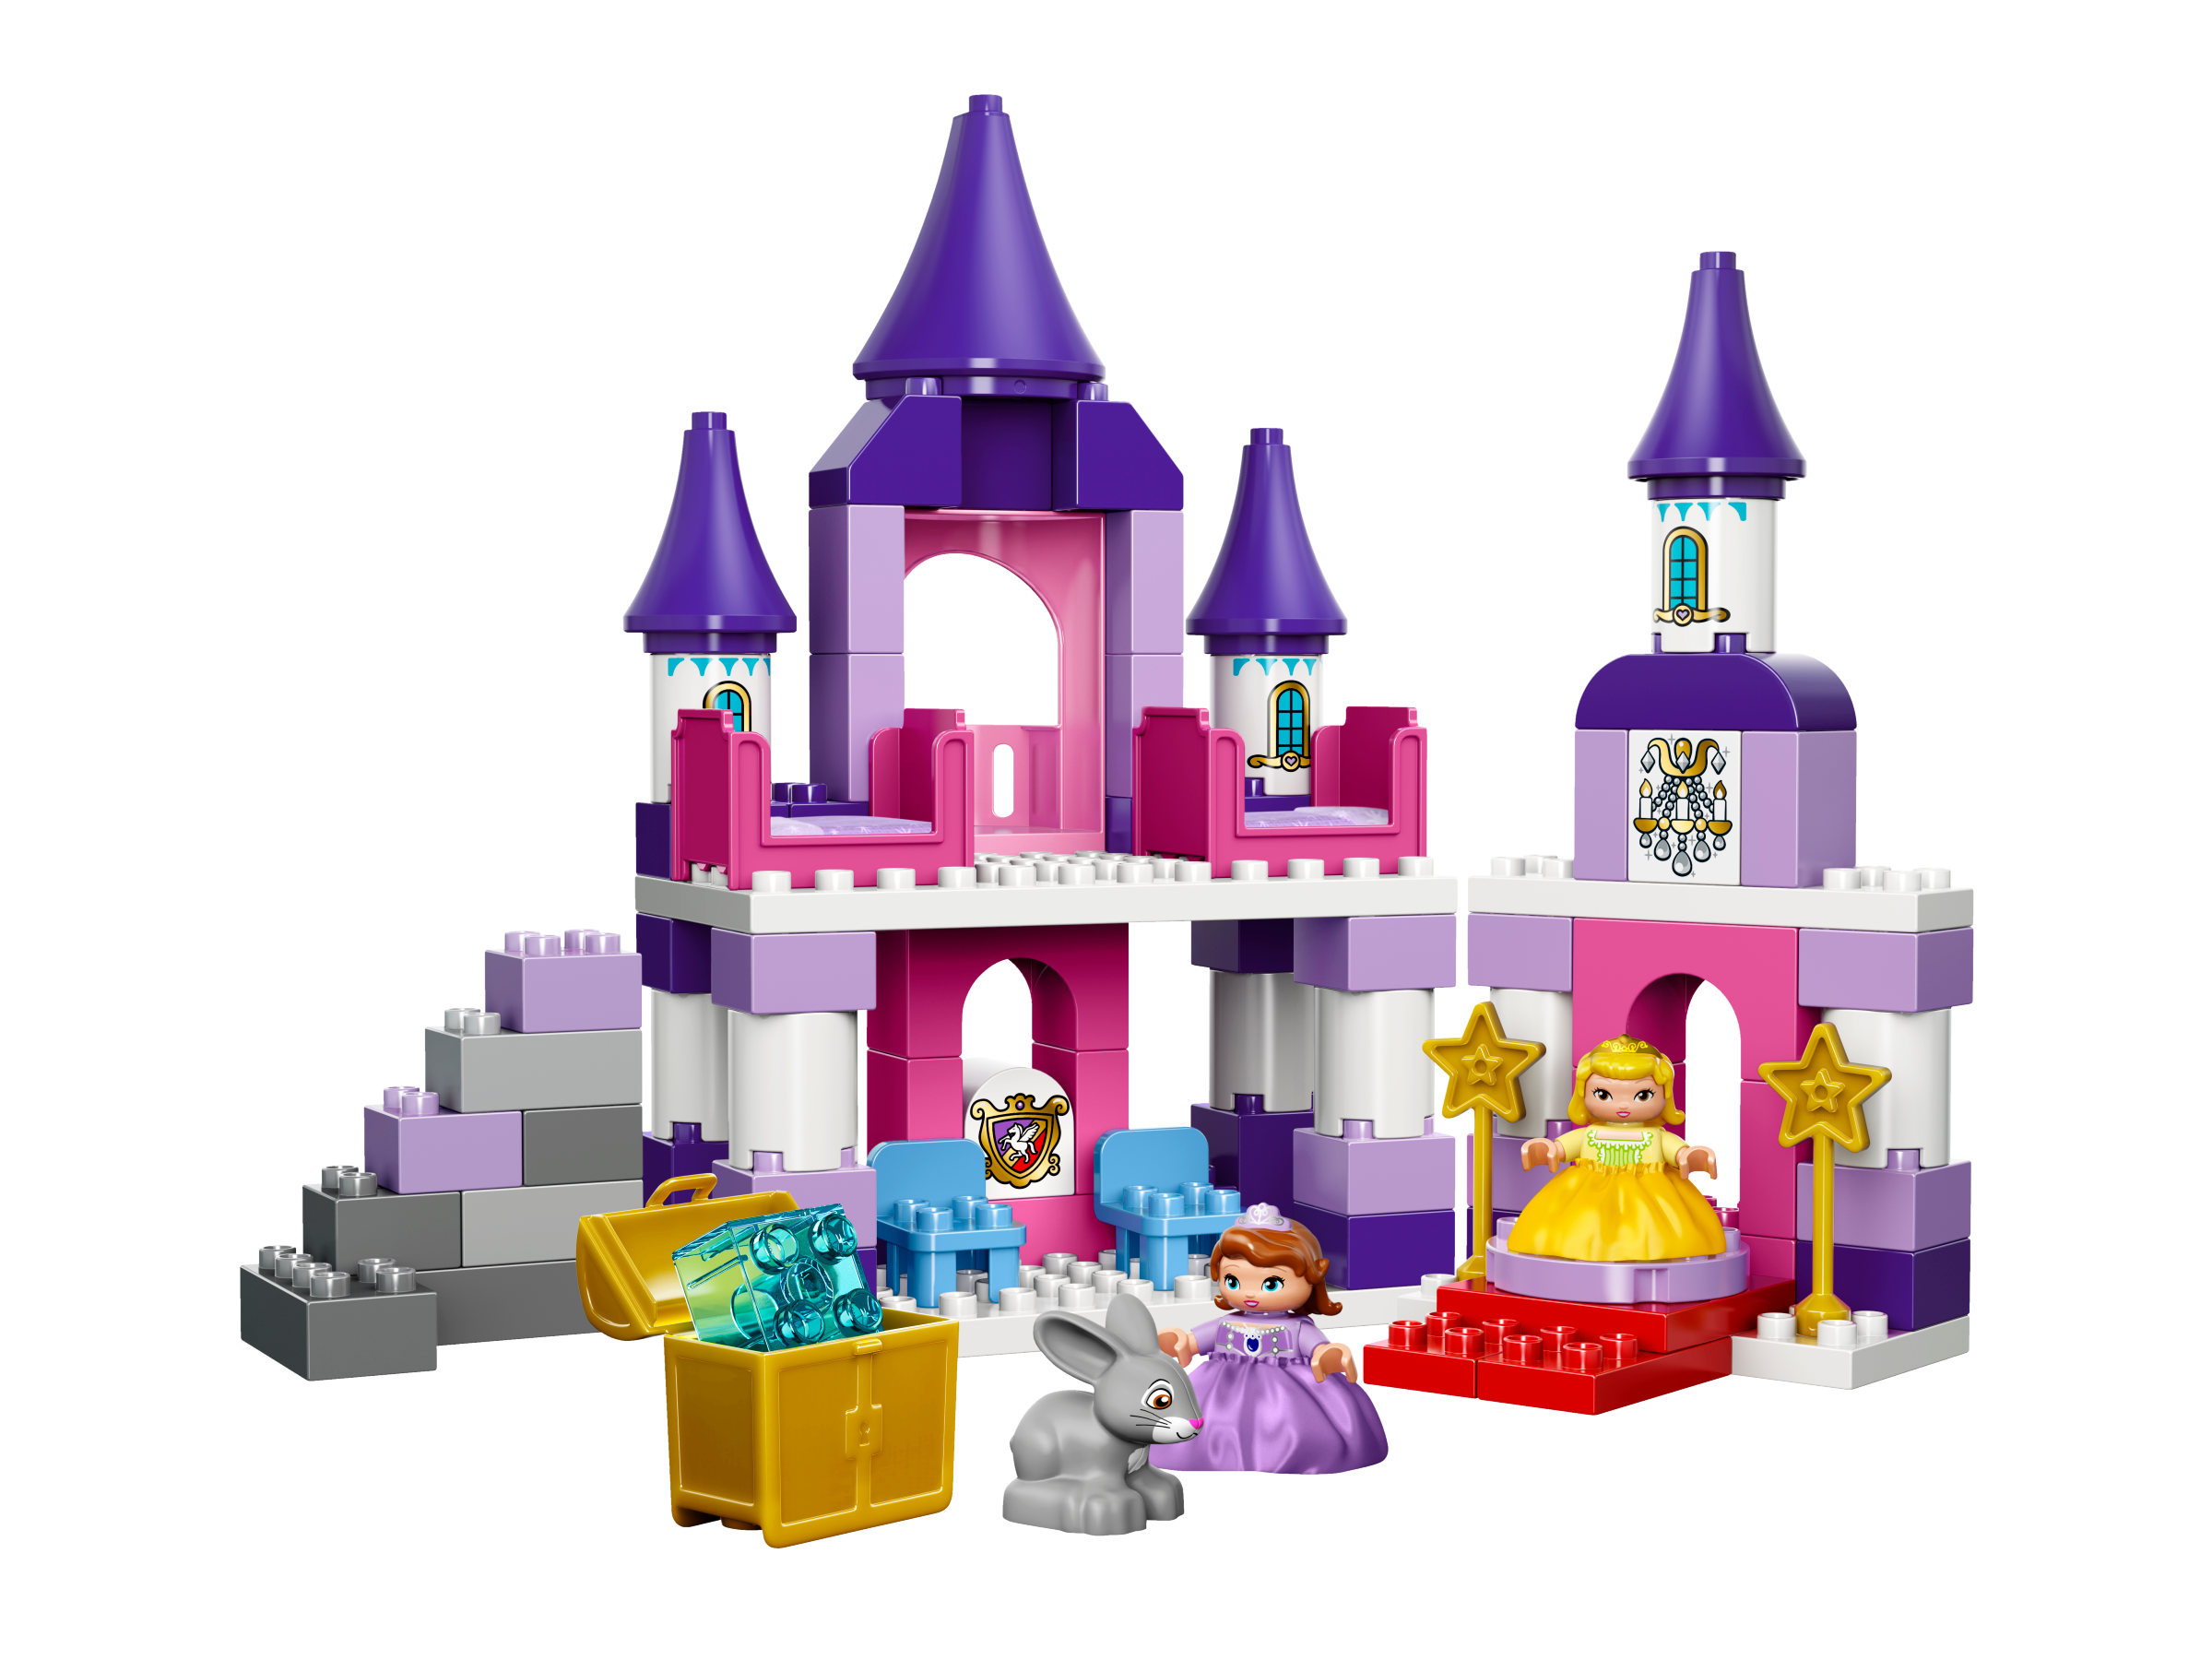 Clipart castle sofia the first. Royal toy building zone